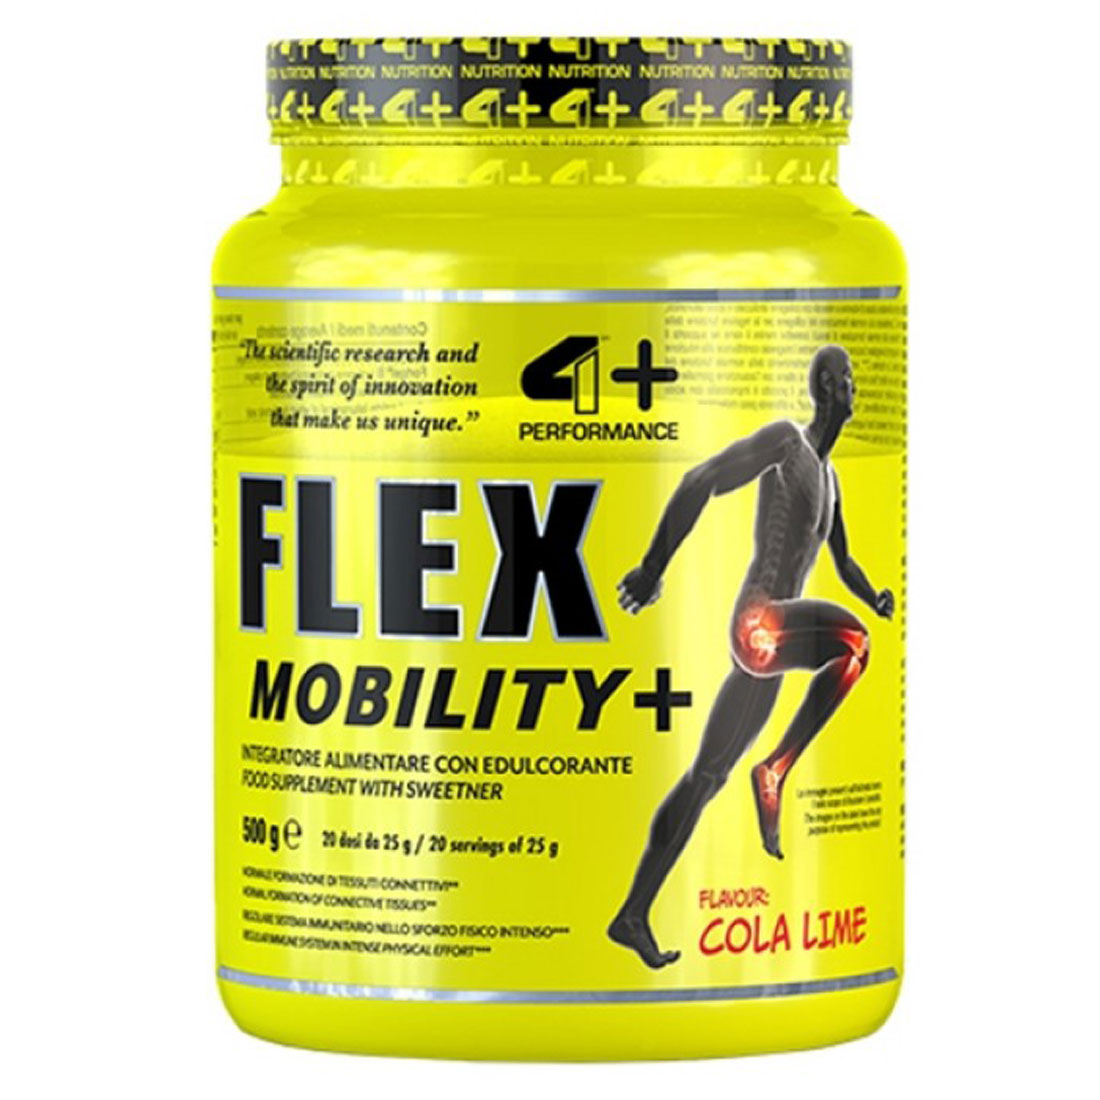 FLEX MOBILITY [500 G] - gusto Cola Lime